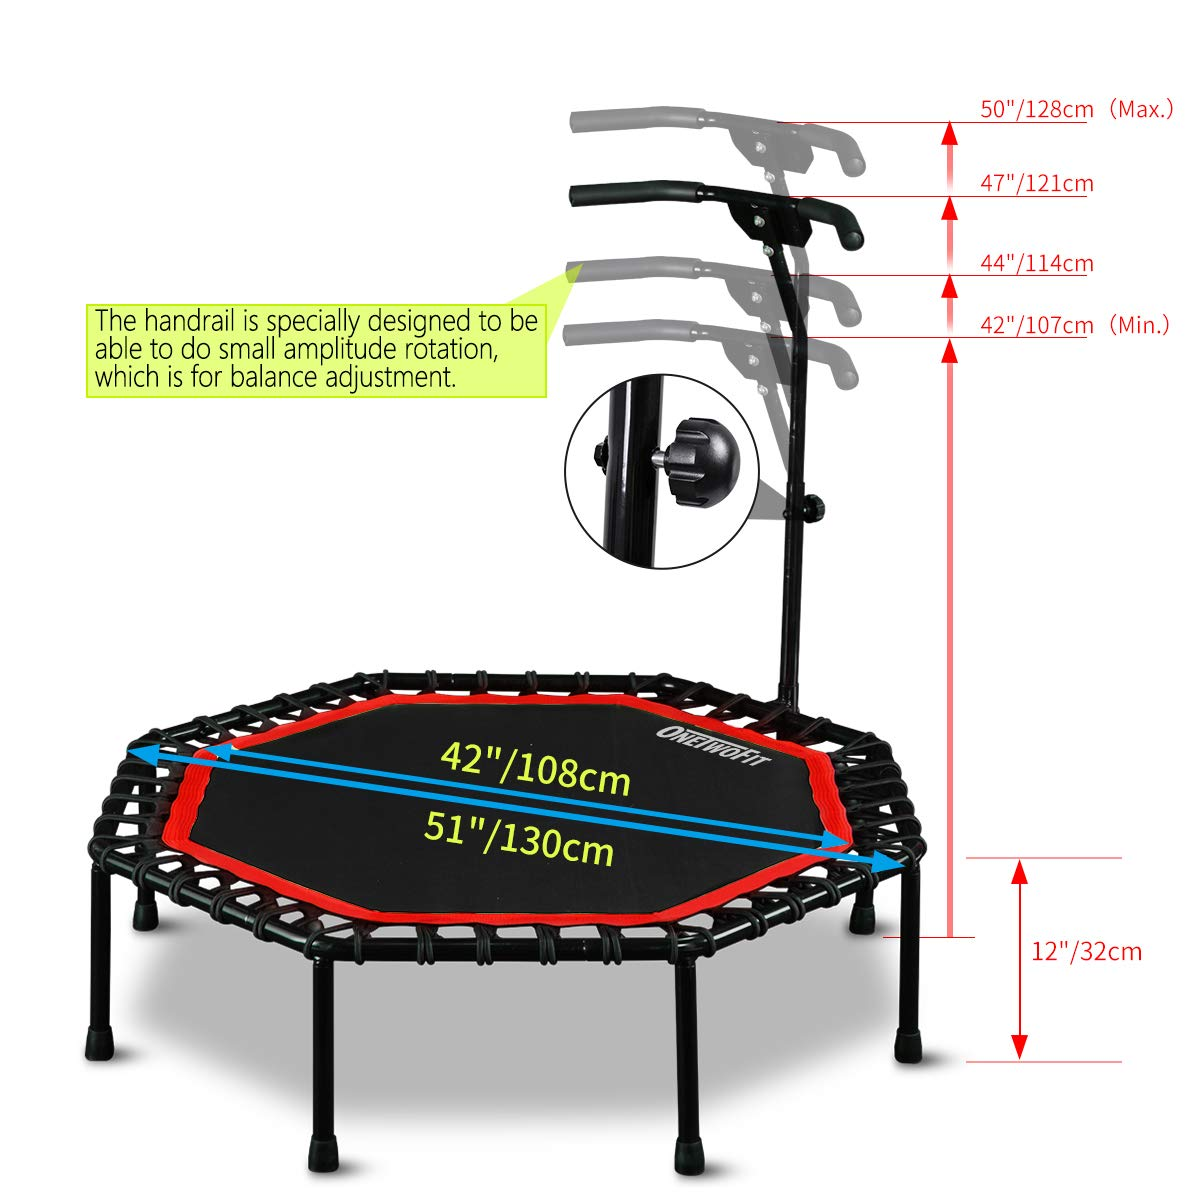 ONETWOFIT 51'' Silent Trampoline with Adjustable Handle Bar, Fitness Trampoline Bungee Rebounder Jumping Cardio Trainer Workout for Adults OT104 by ONETWOFIT (Image #2)